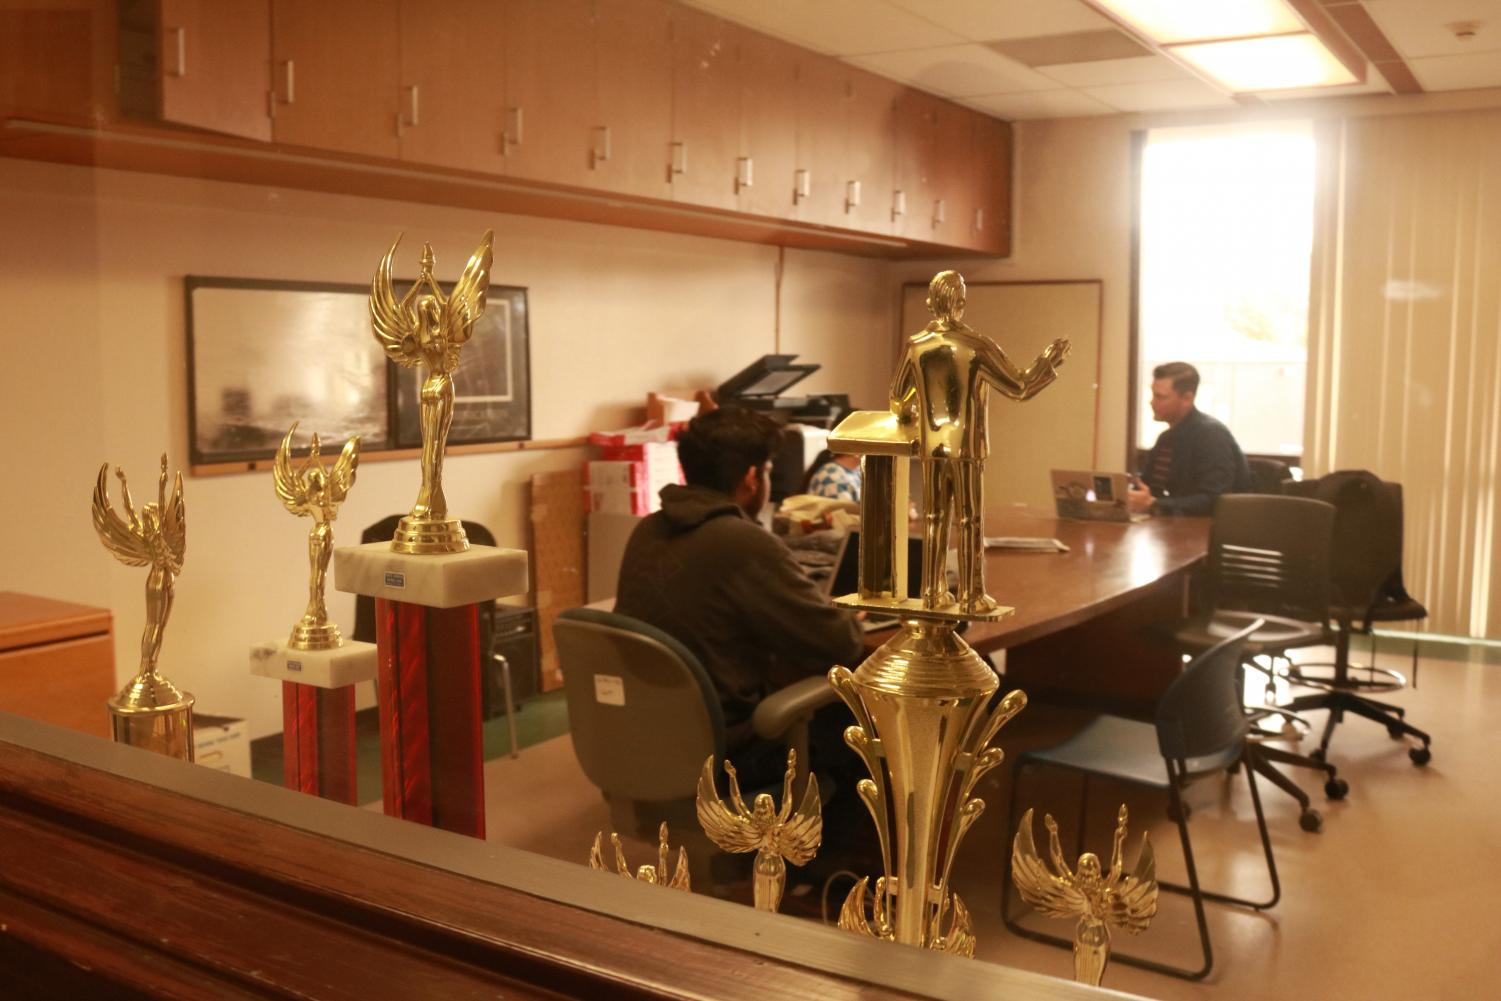 Speech team captain Shreejal Luitel (center) and team member Gaby Hernandez (hidden behind trophy) meet with coach Randy Carver (right) in the Speech Lab in AA-219.